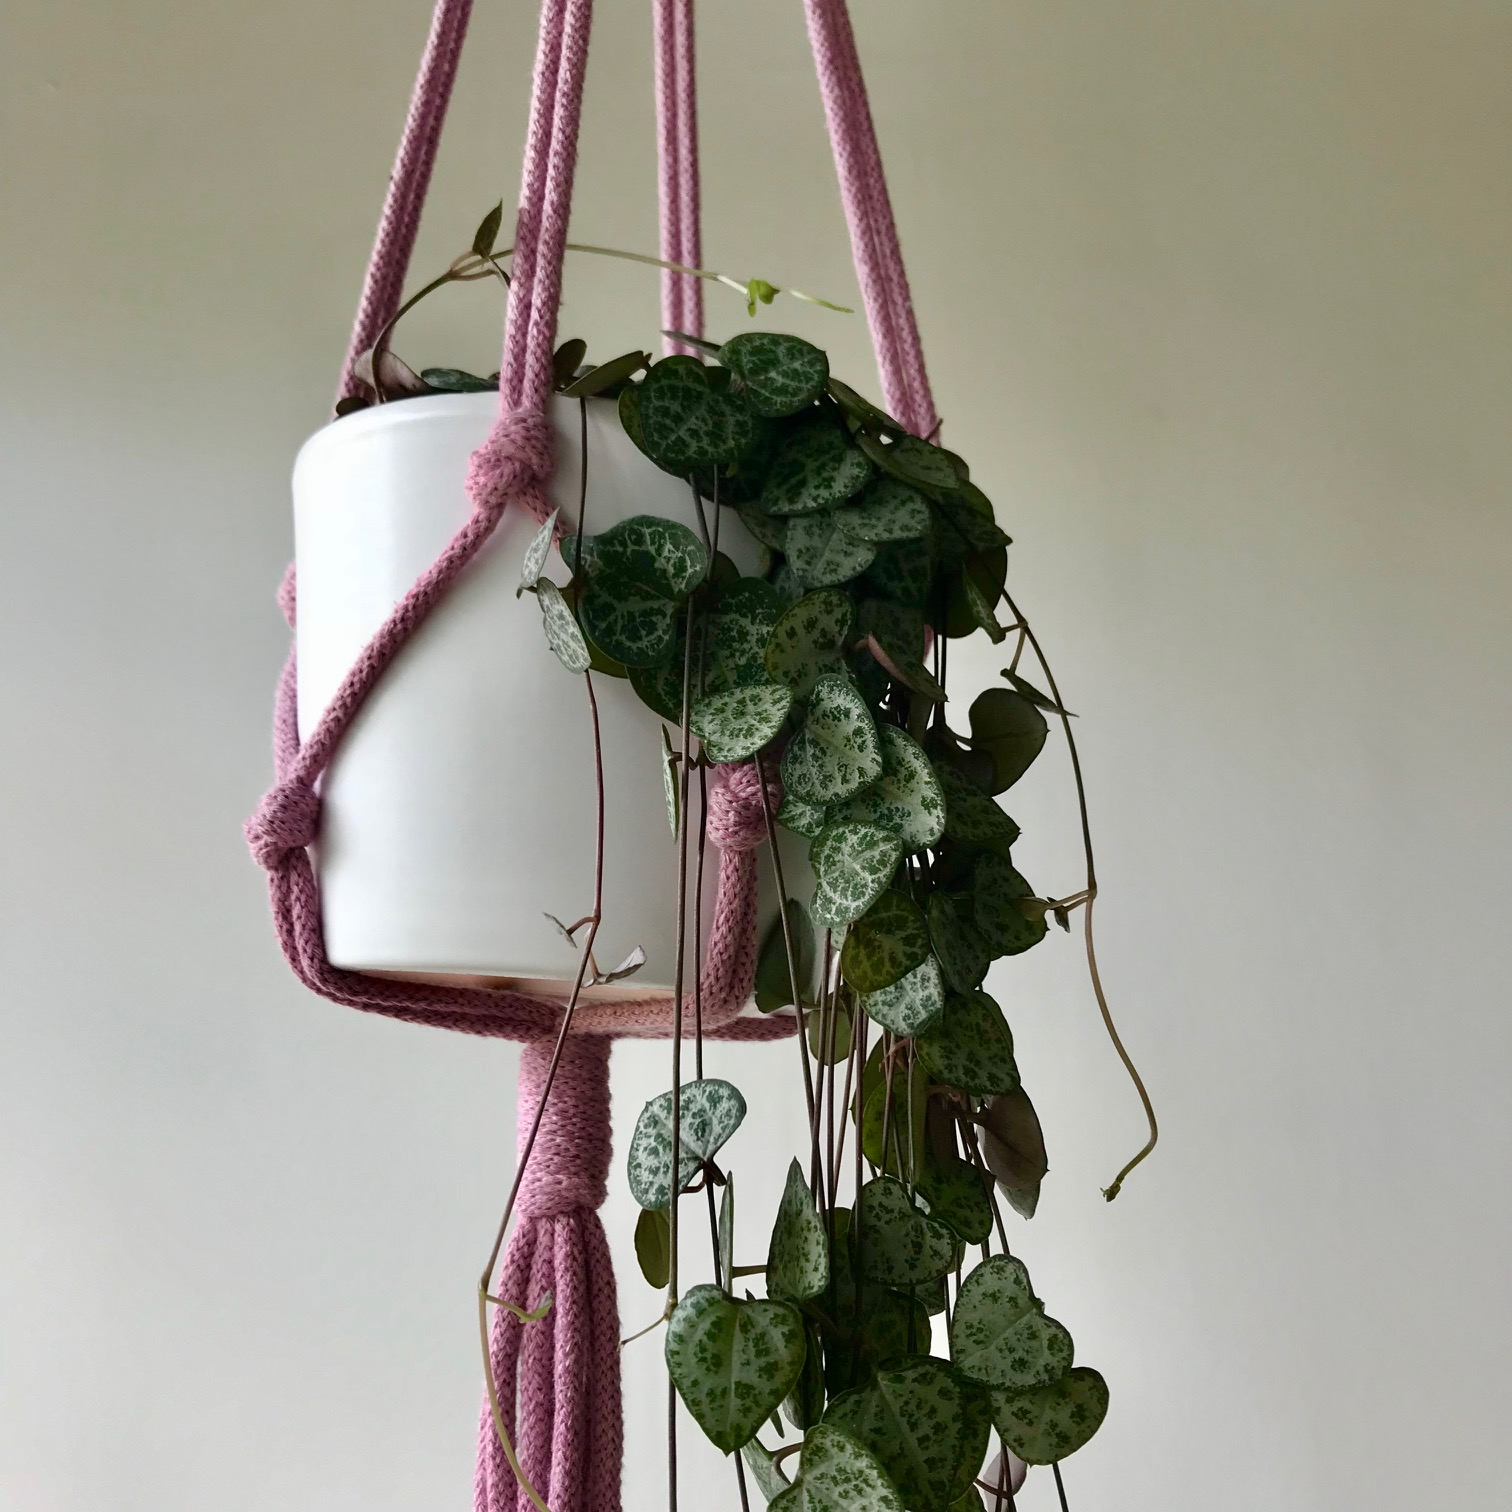 Display your plant in this Macrame Hanger & Pot  Combo